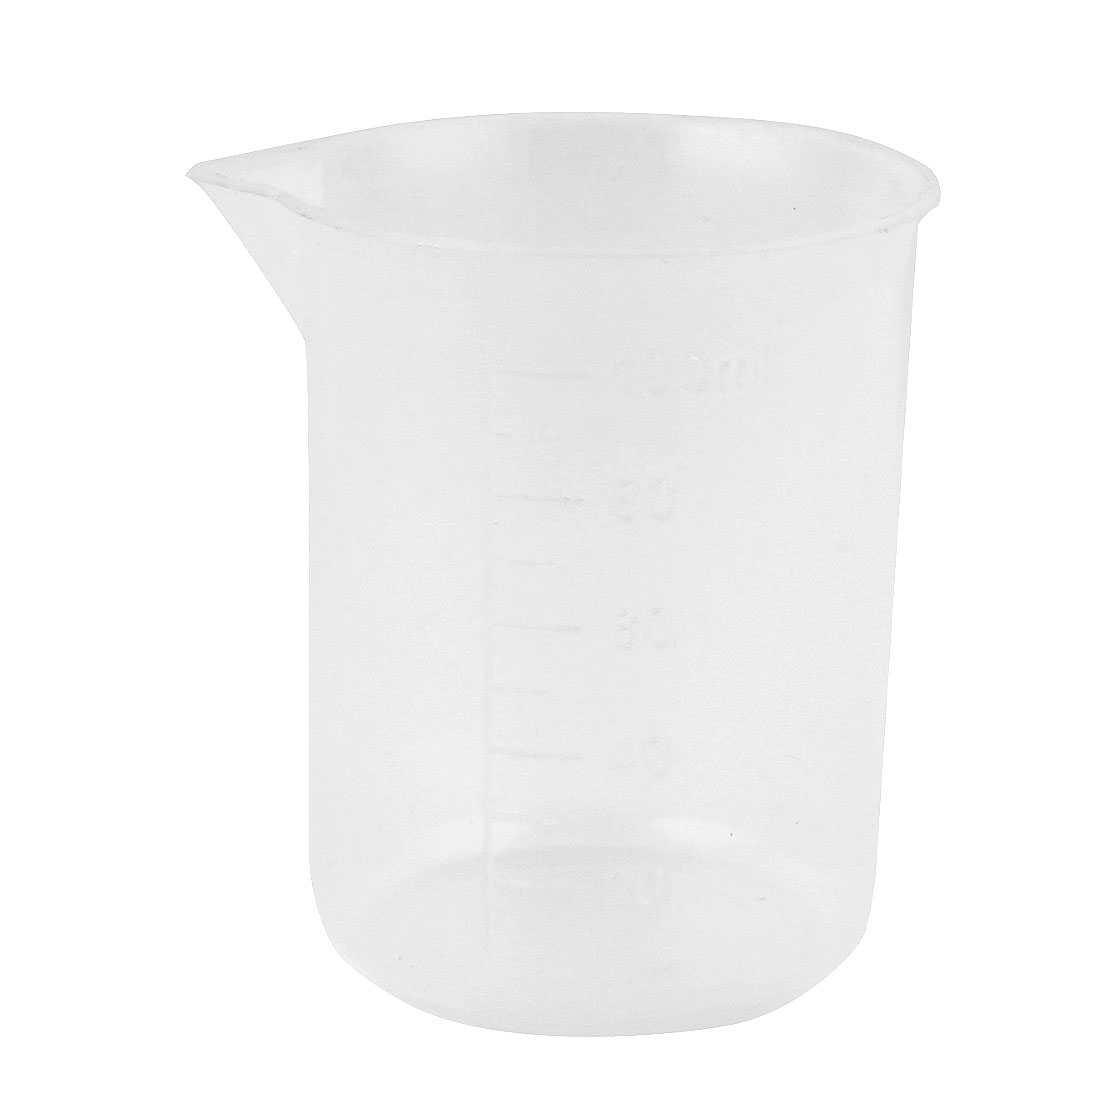 Lab Laboratory Chemistry Graduated Clear Plastic Water Liquid Measuring Container Testing Beaker 100mL